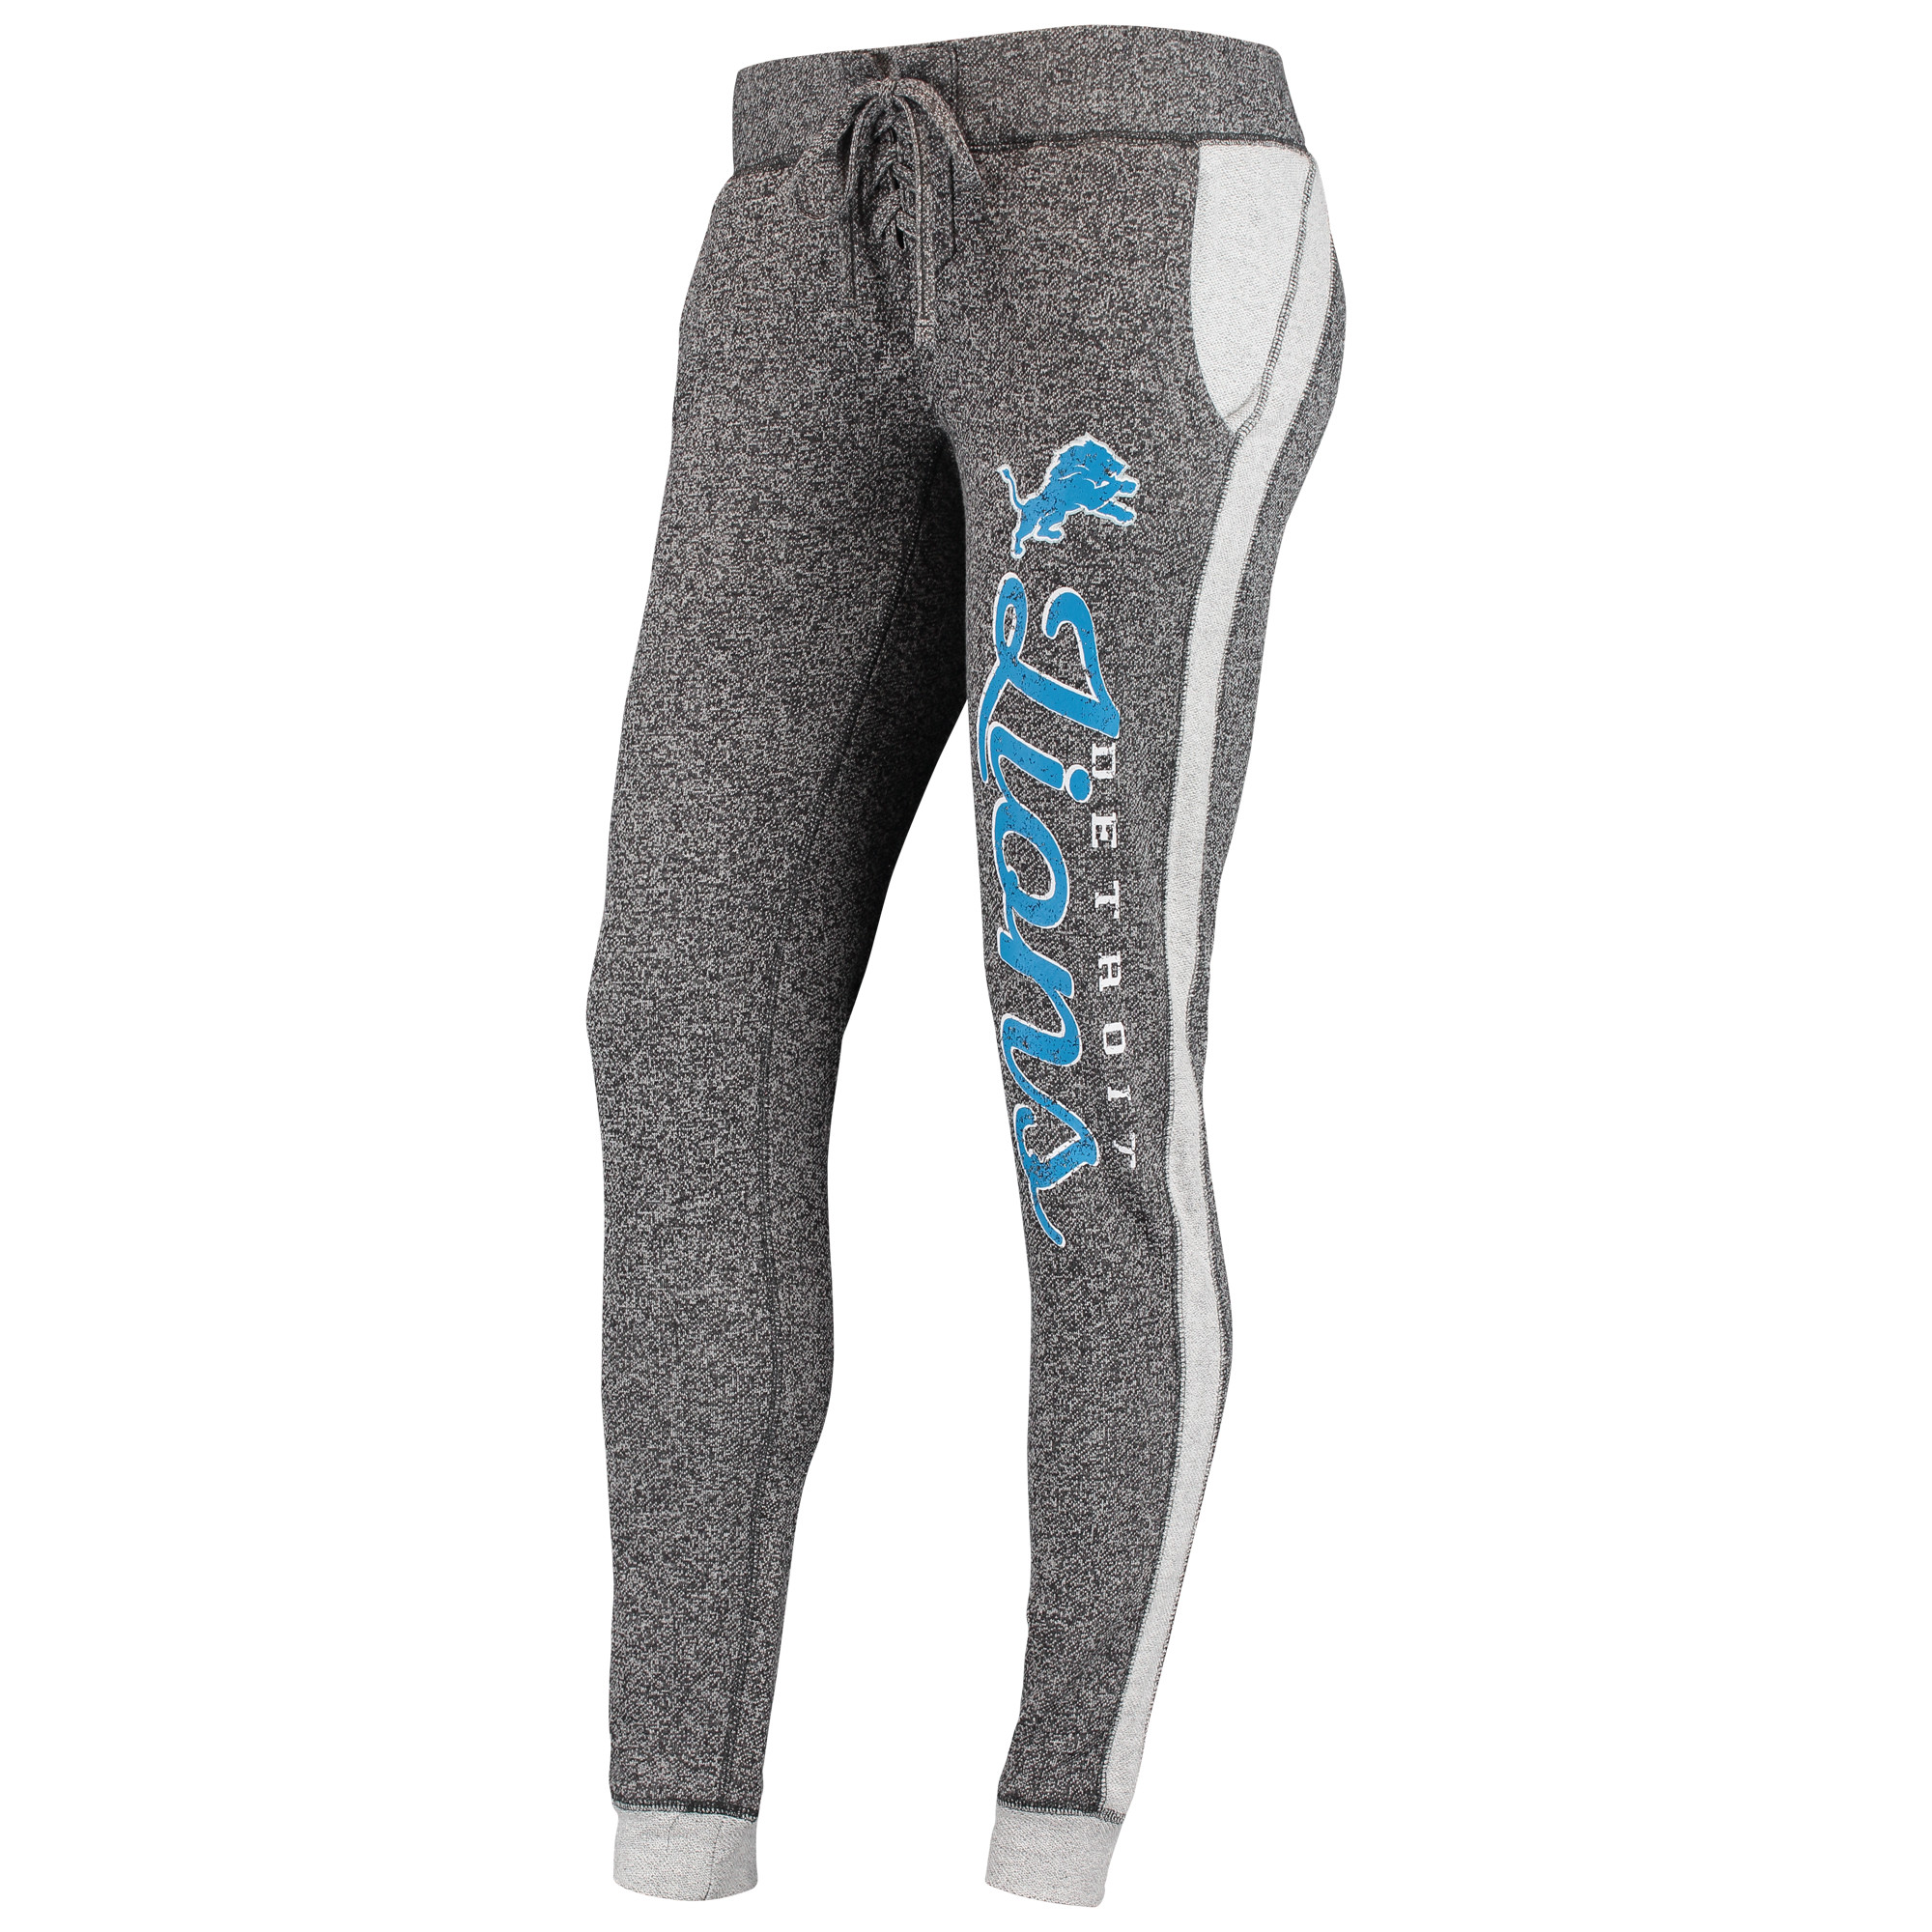 Detroit Lions Concepts Sport Women's Walk Off Pants - Charcoal